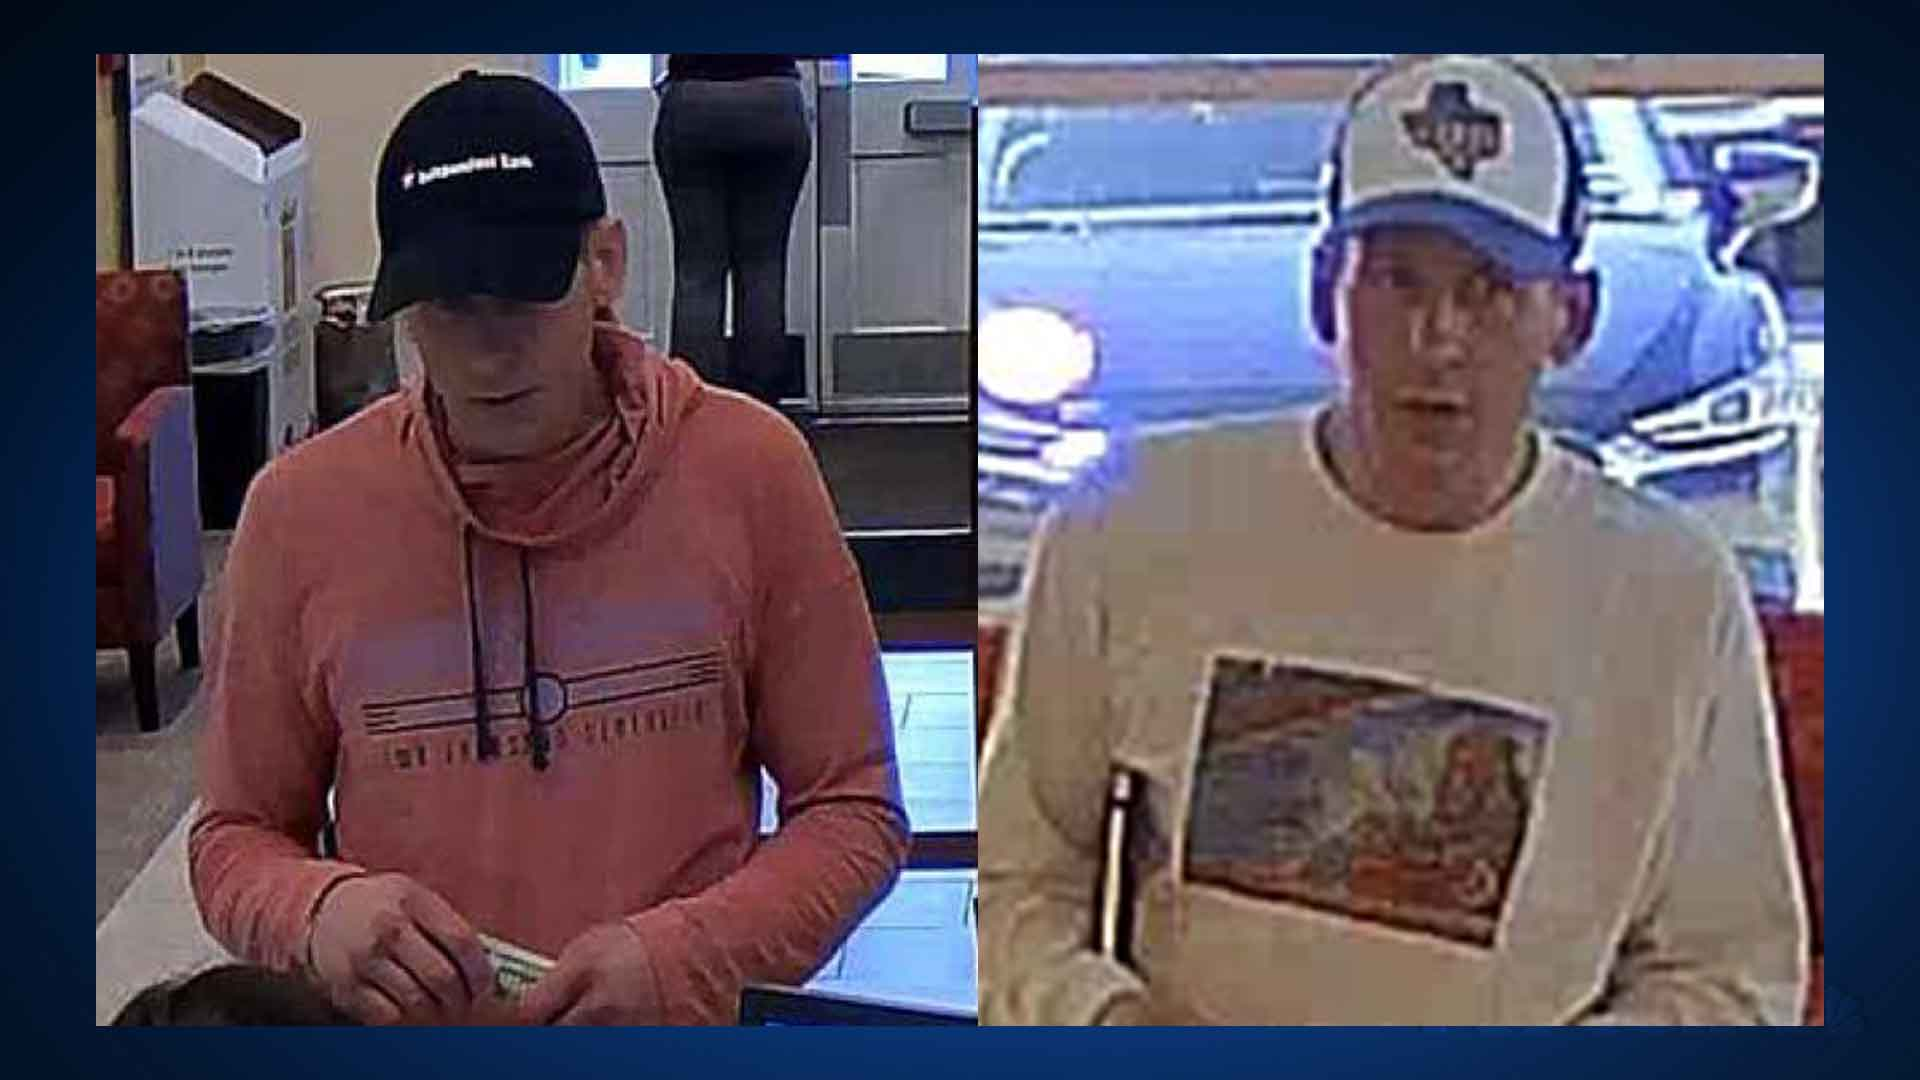 bank-robbery-suspects_1543965198814.jpg